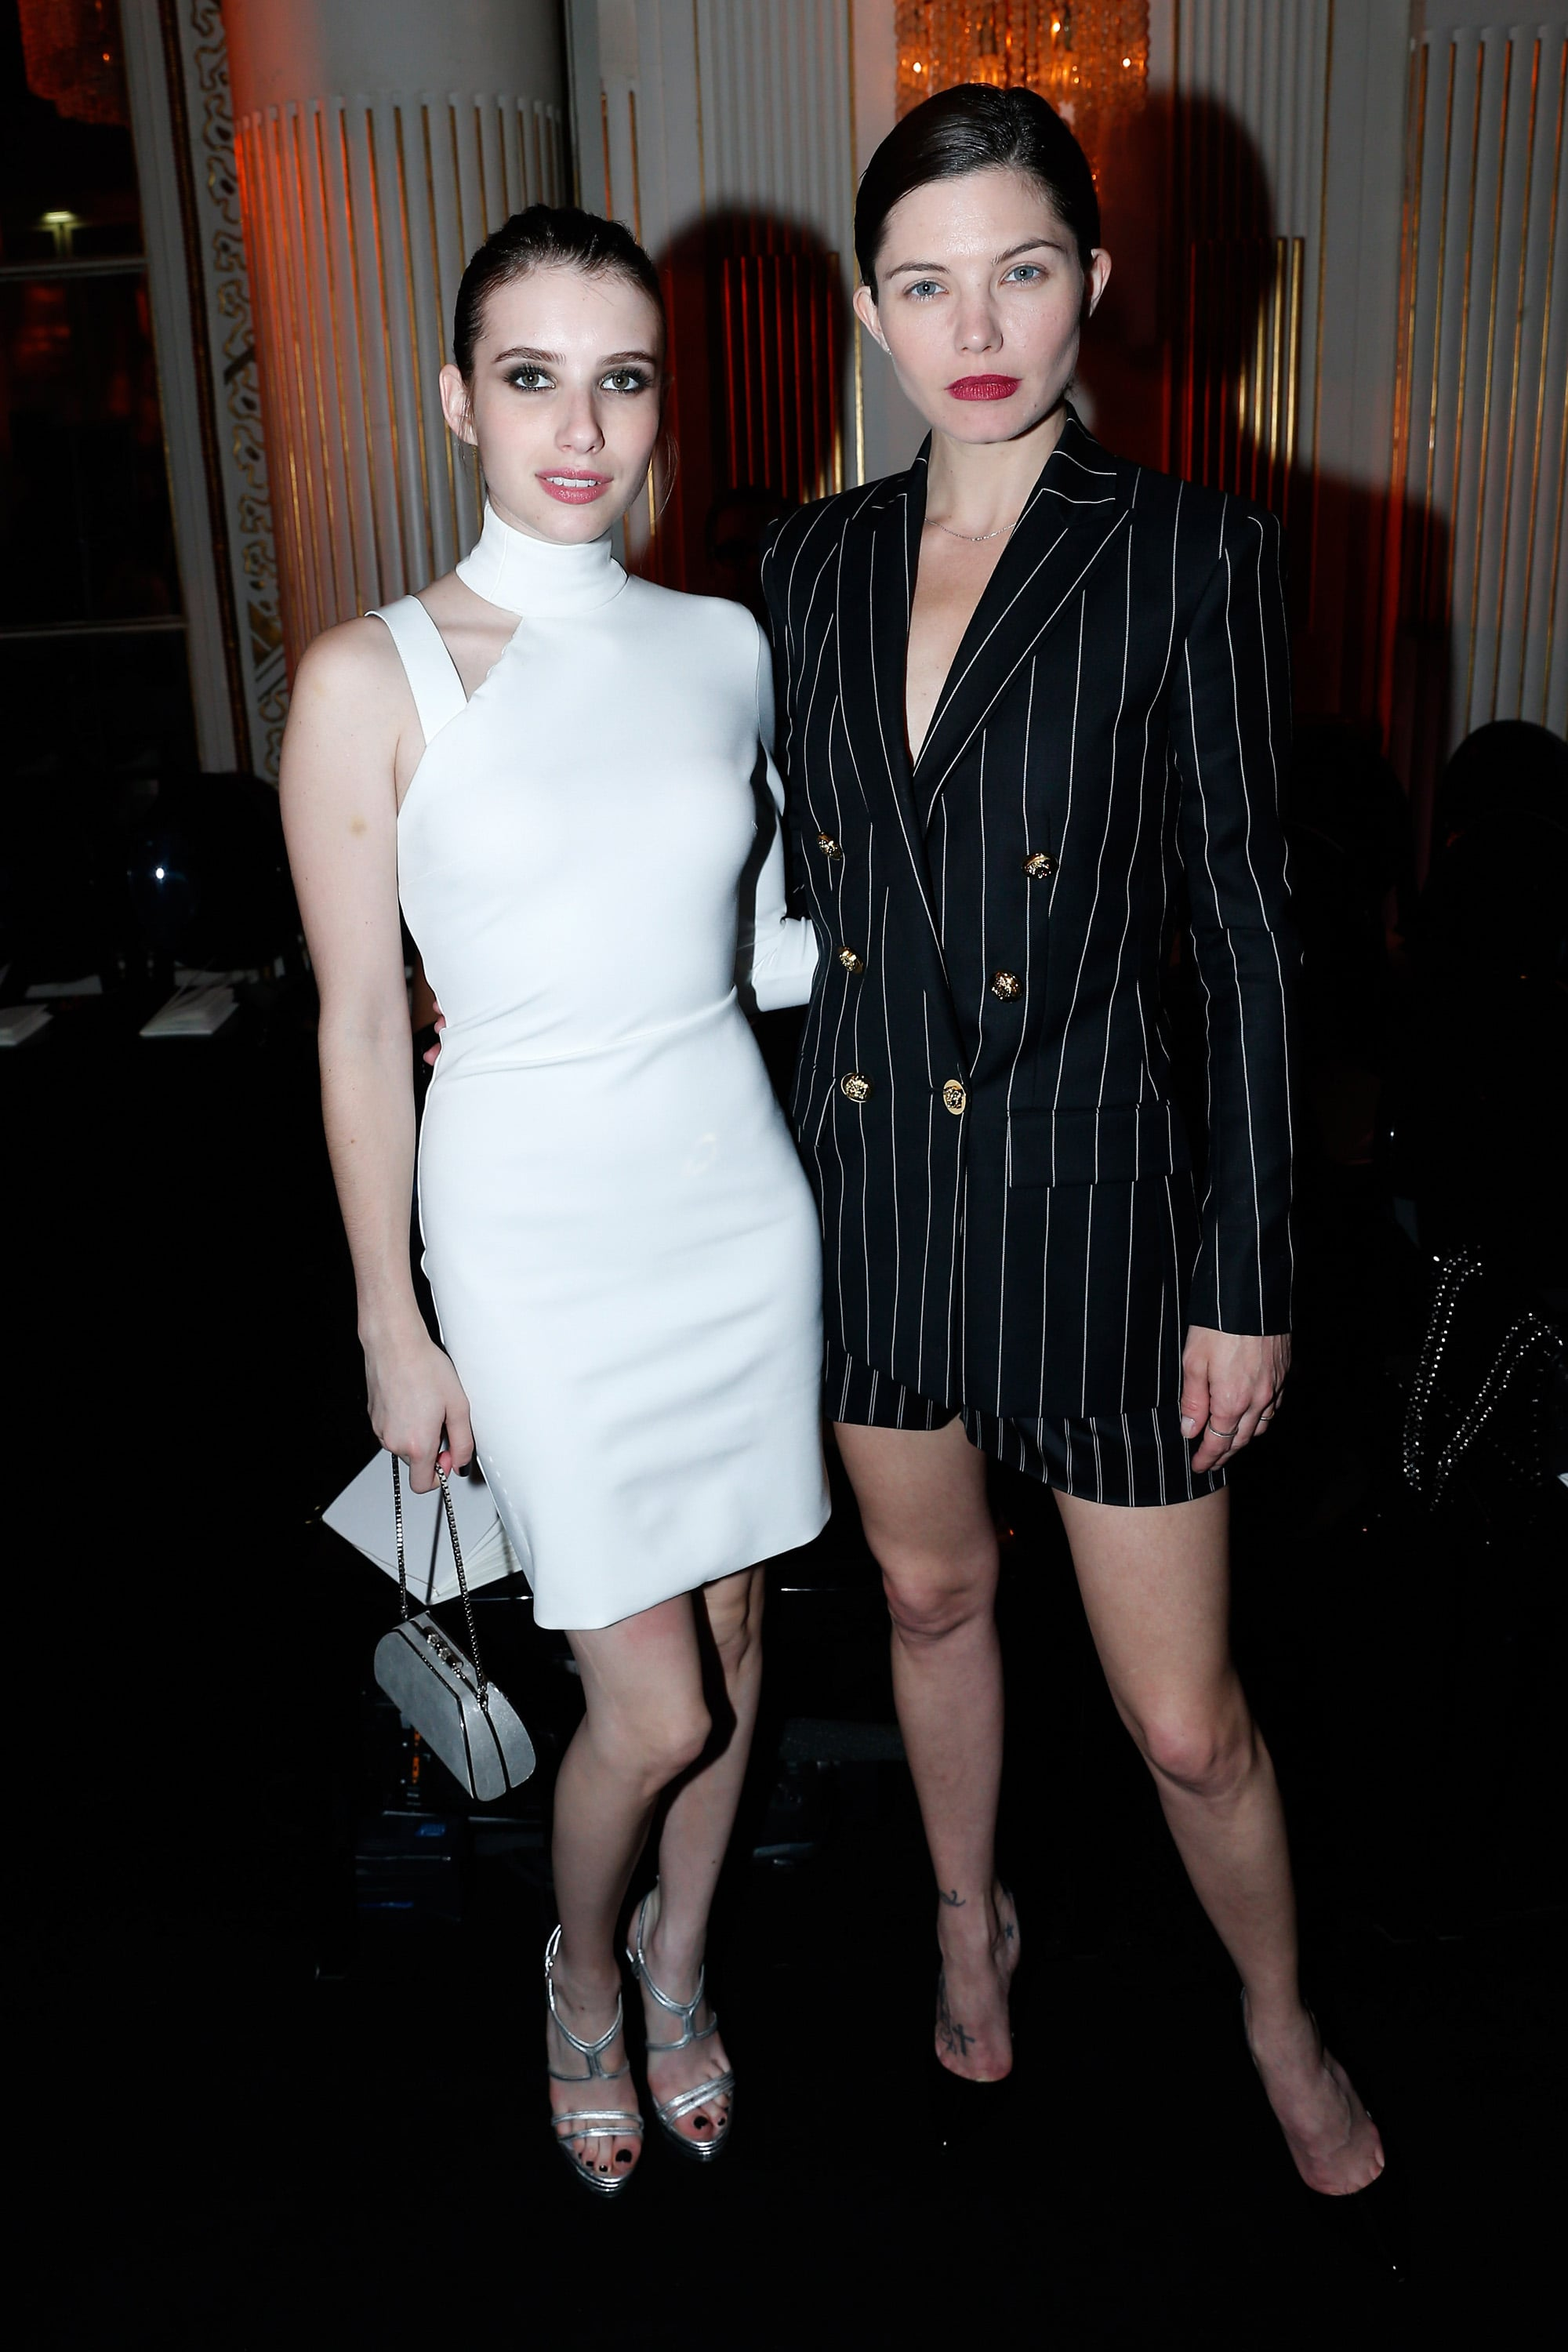 Black and white made for a dramatic pairing when Emma Roberts and  Delphine Chanéac shared a shot at Atelier Versace.